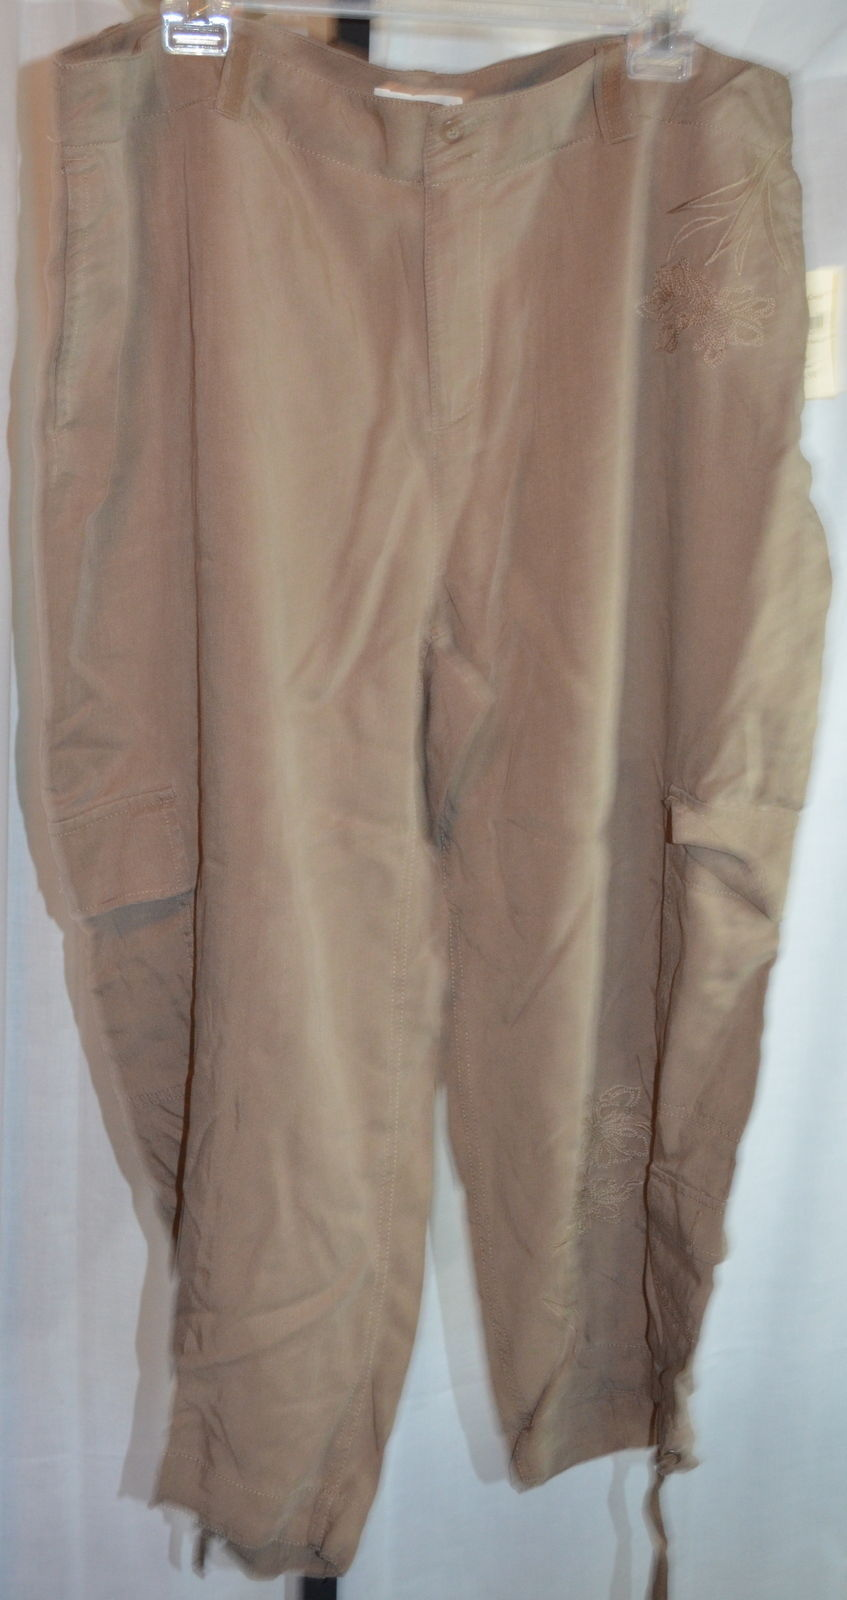 Coldwater creek brown embroidered tencel capri cropped